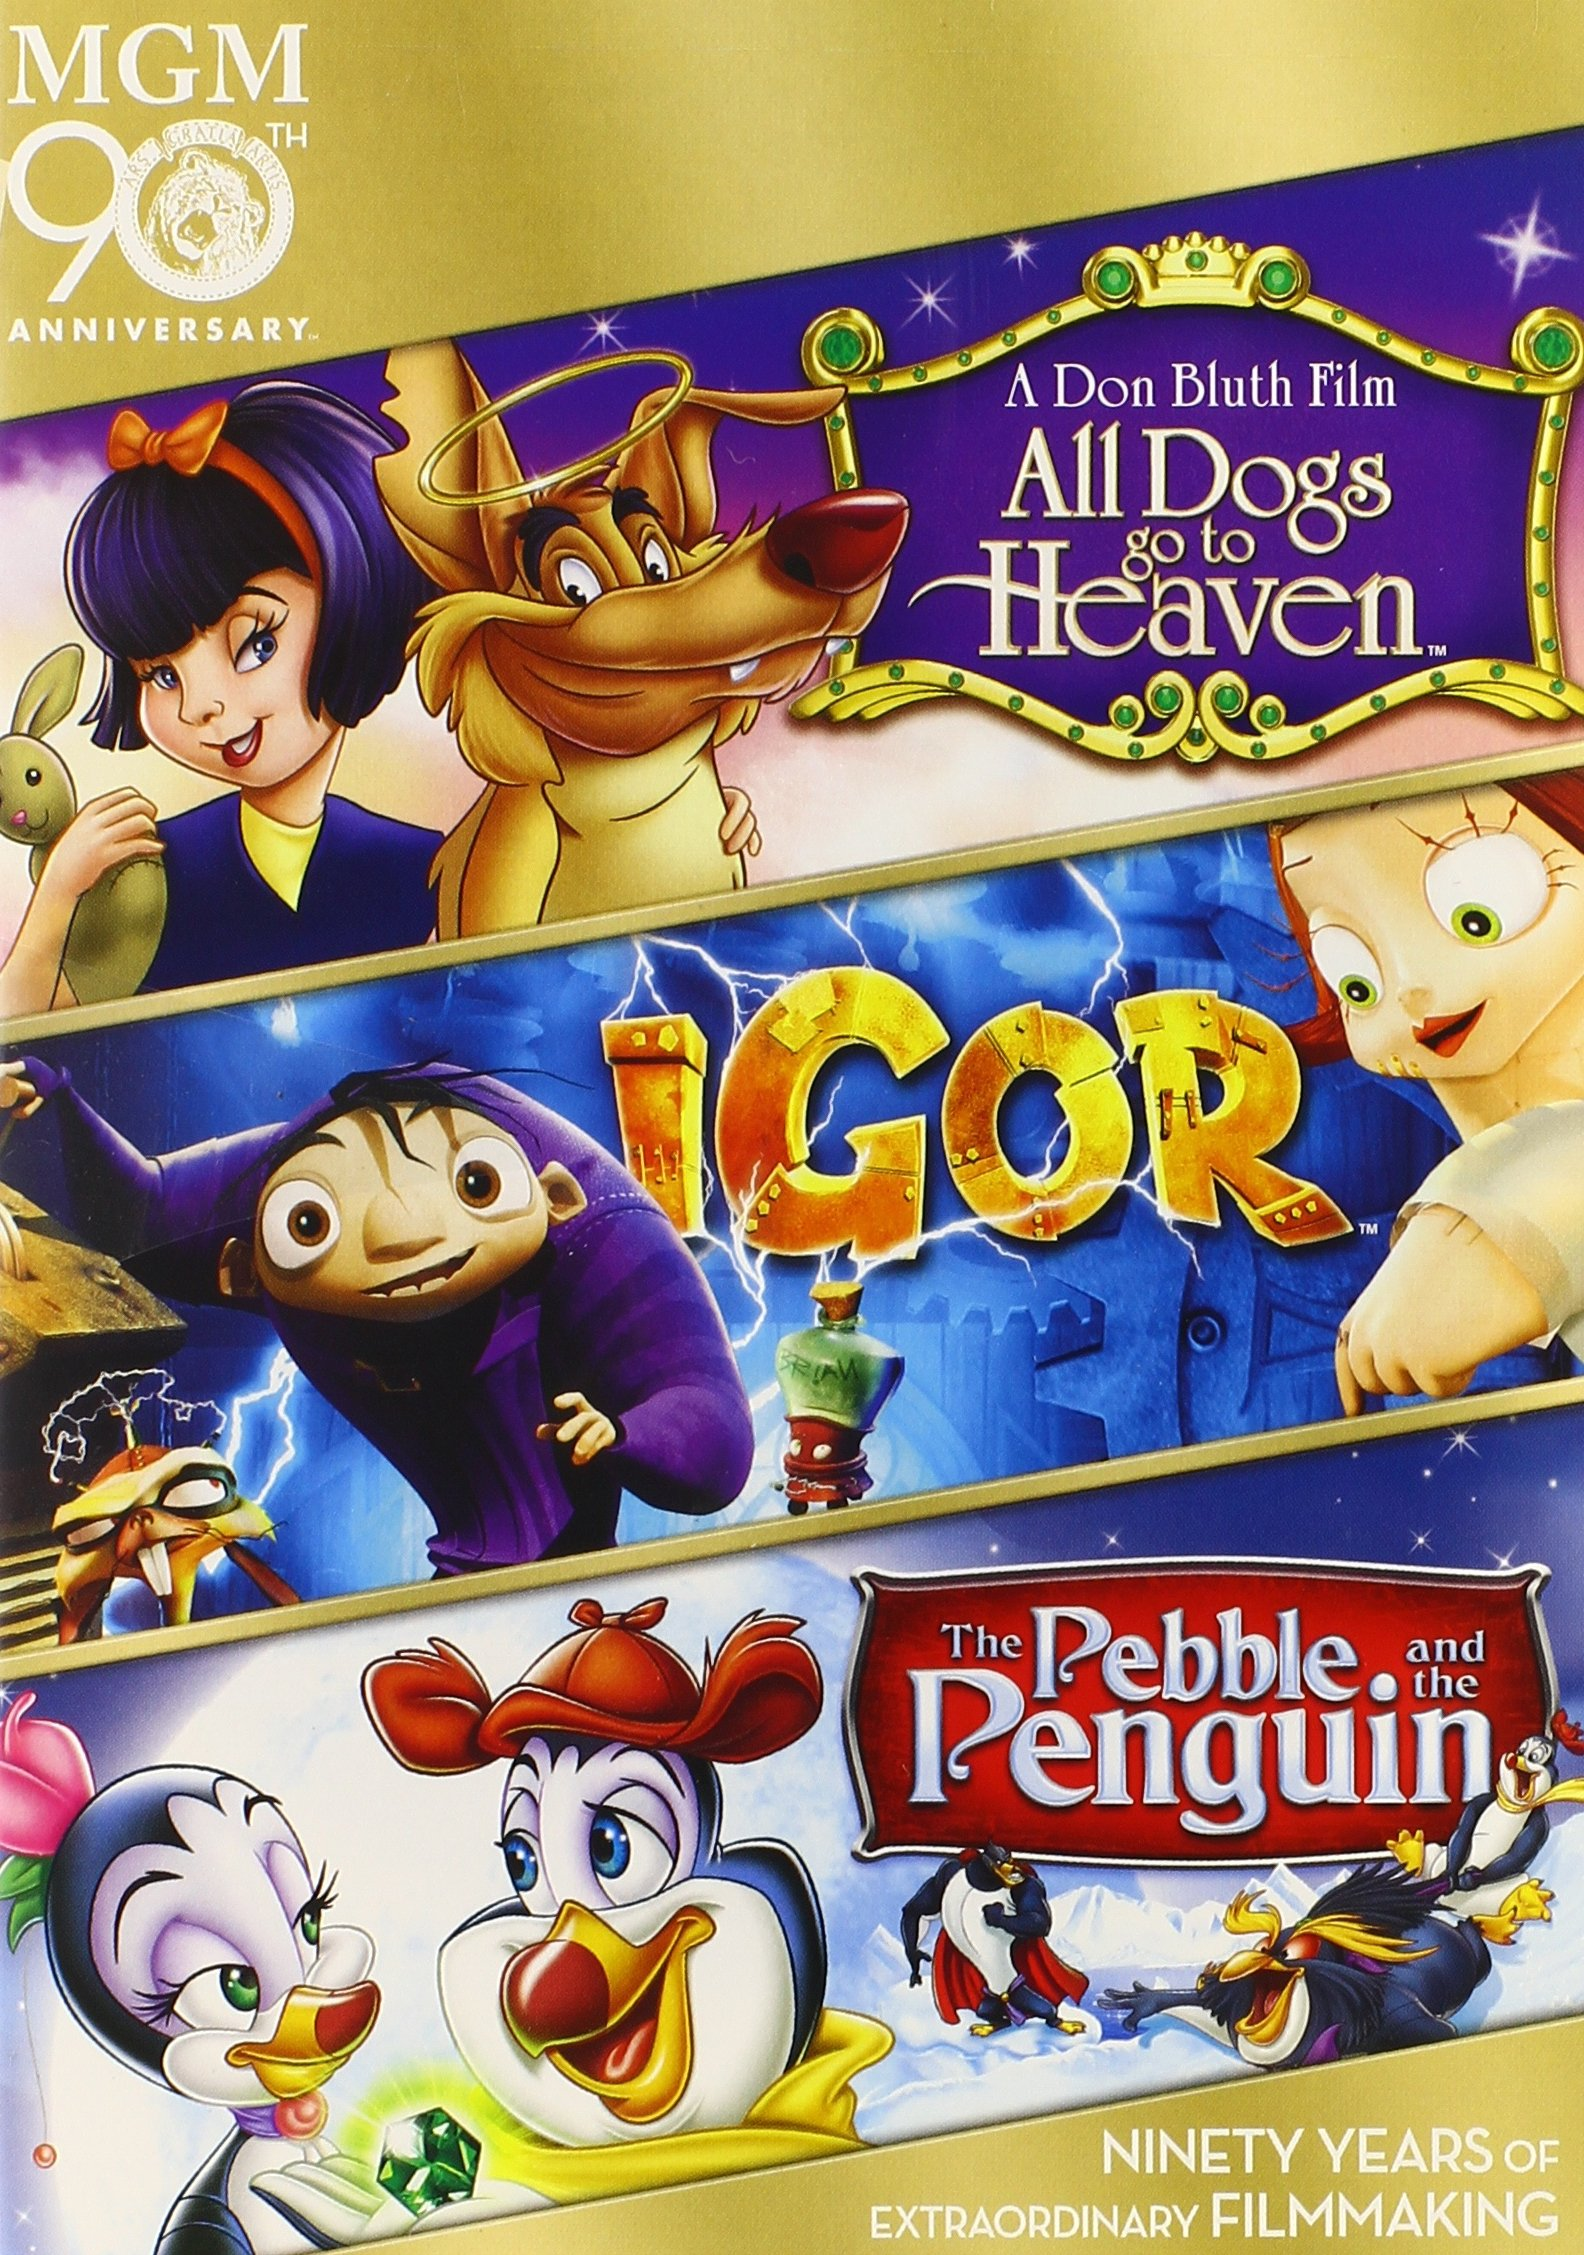 Mgm 90 Igor+all Dogs+pebb Tf by MGM (Video & DVD)